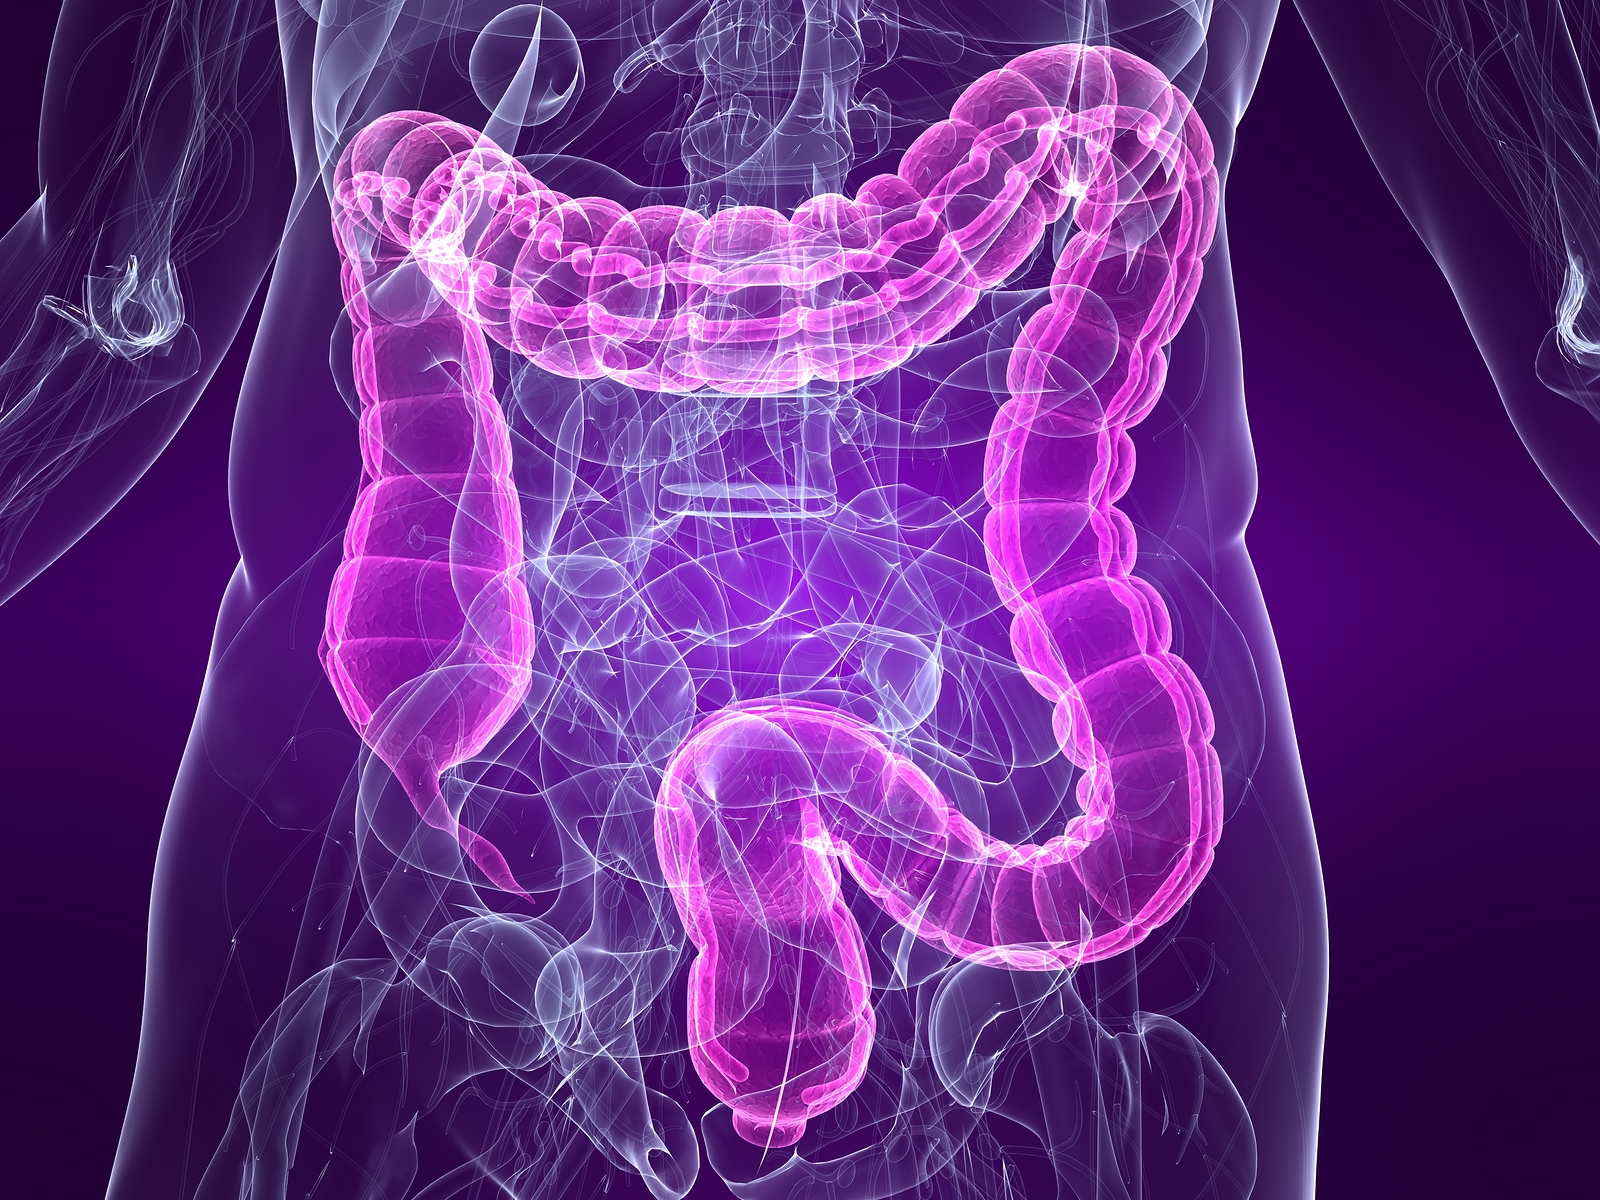 bigstock-Highlighted-Colon-3695864.jpg